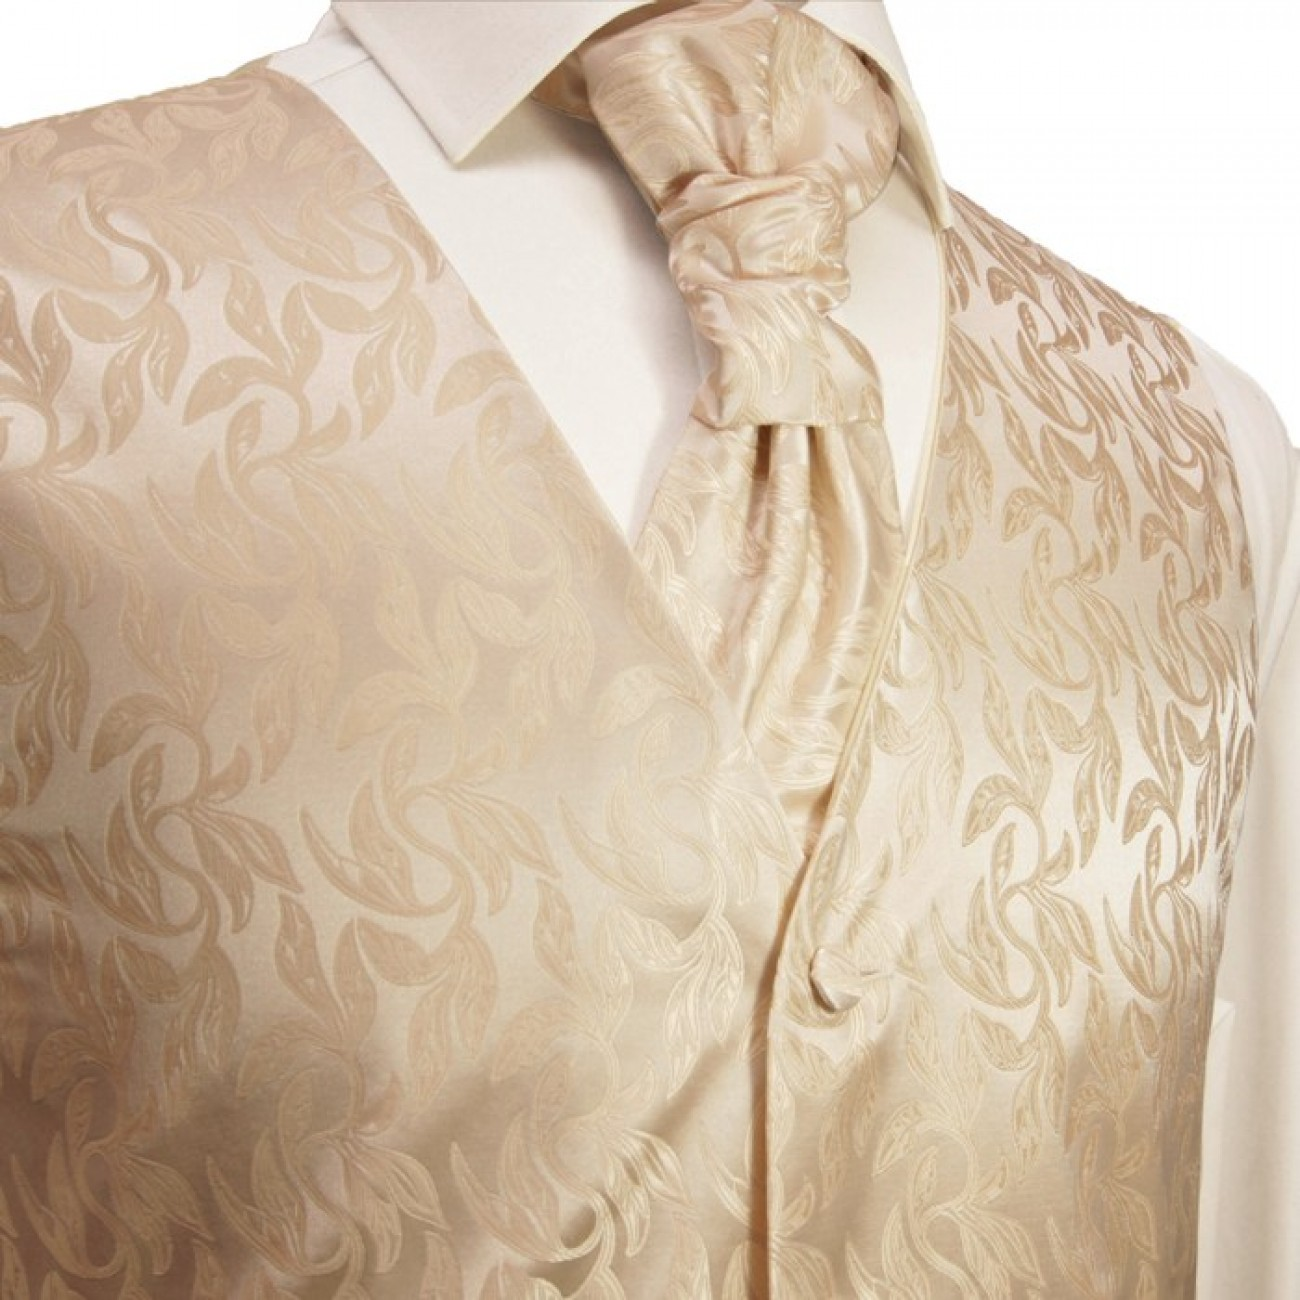 Cappuccino waistcoat for wedding with necktie ascot tie pocket square and cufflinks v42